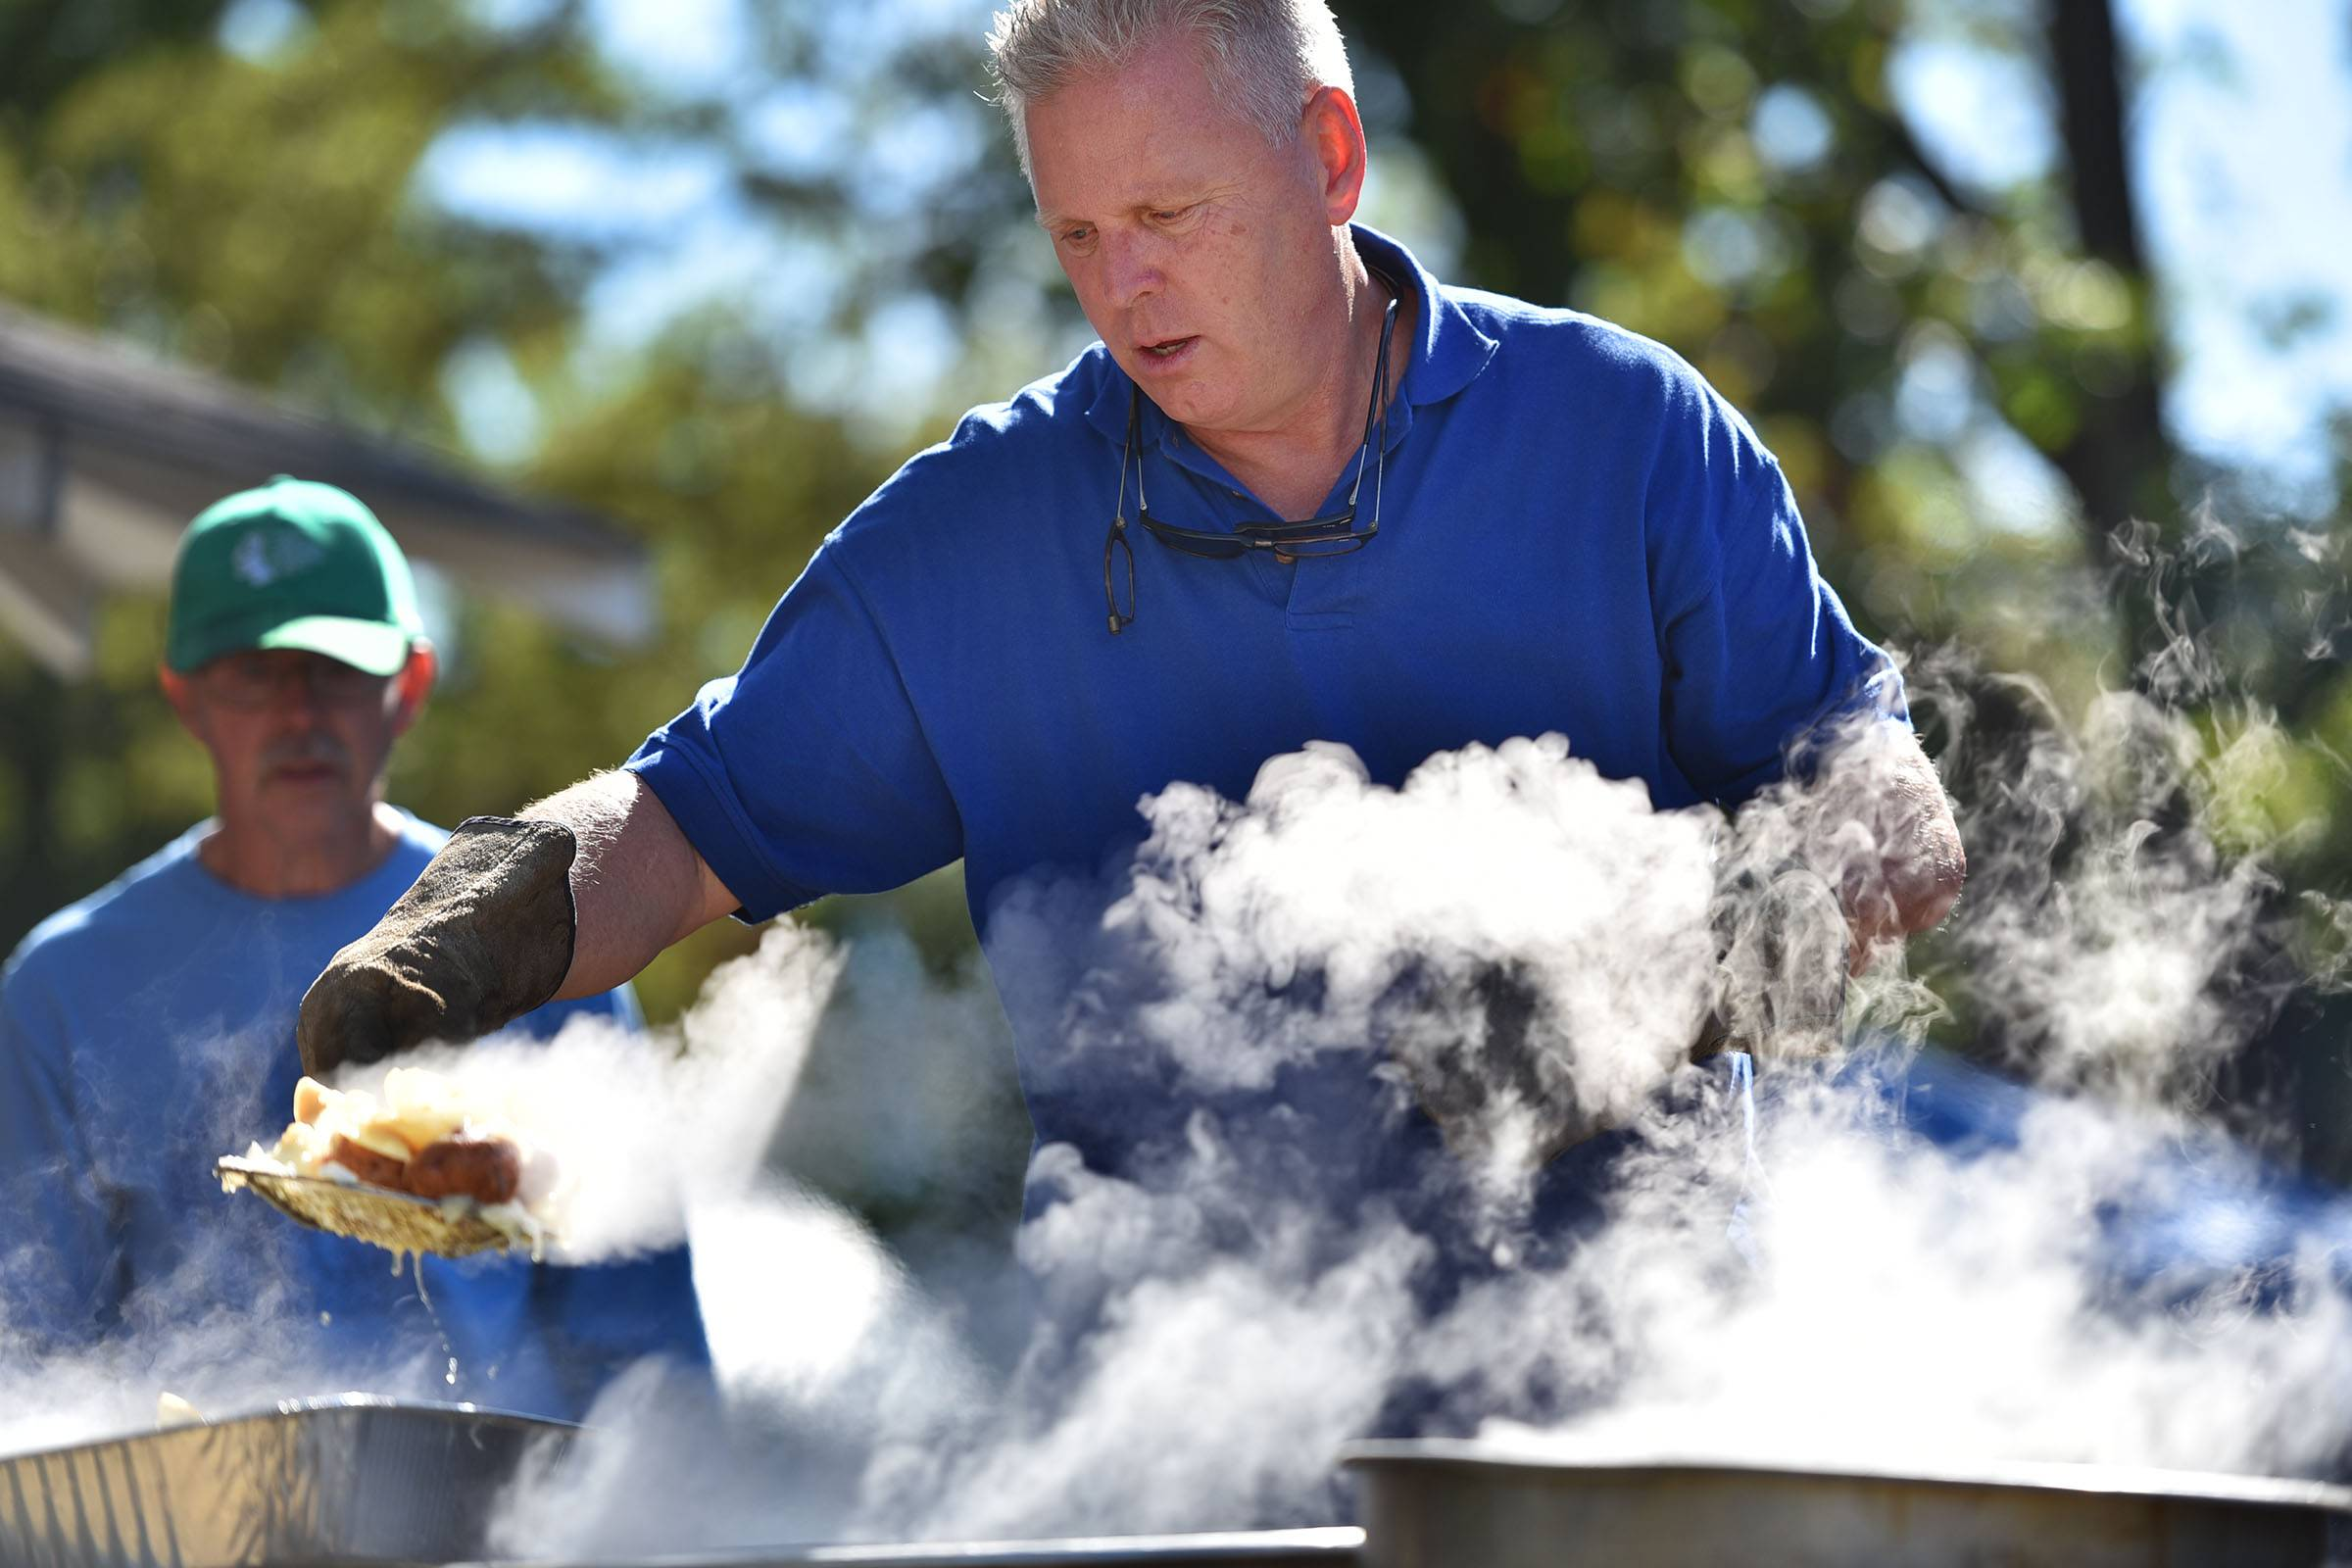 As steam rises, David Anthonsen scoops Icelandic cod with potatoes and onions from boiling pots over an open fire pit at the 17th Fish Boil at Vasa Park in South Elgin Saturday.